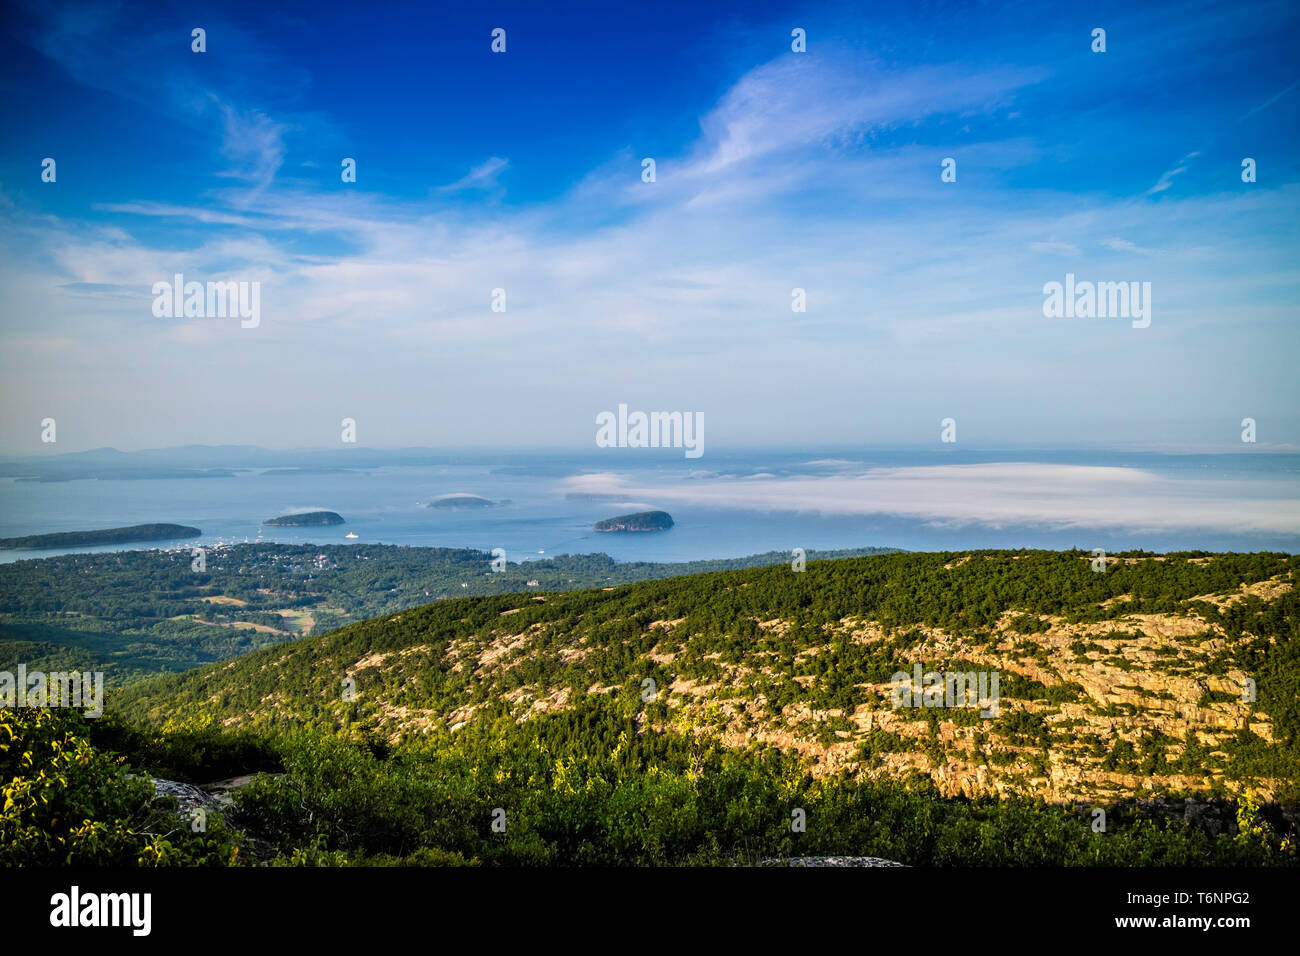 The overlooking Frenchman Bay in Acadia National Park, Maine - Stock Image